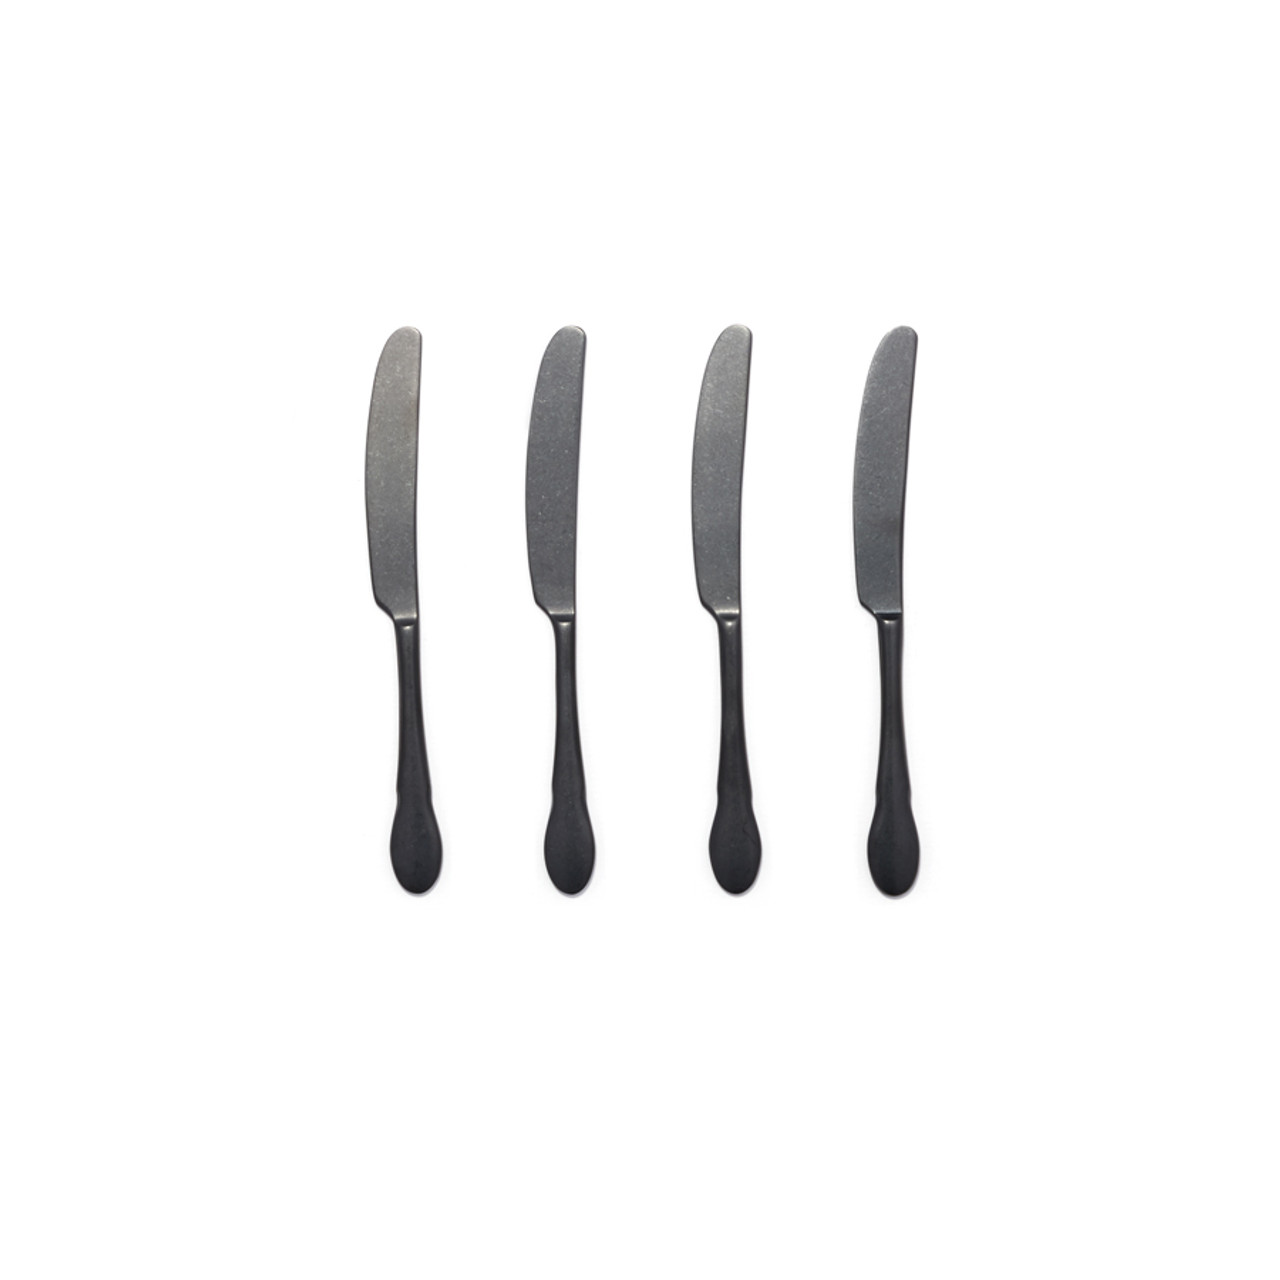 Ebony - 4 piece spreader set